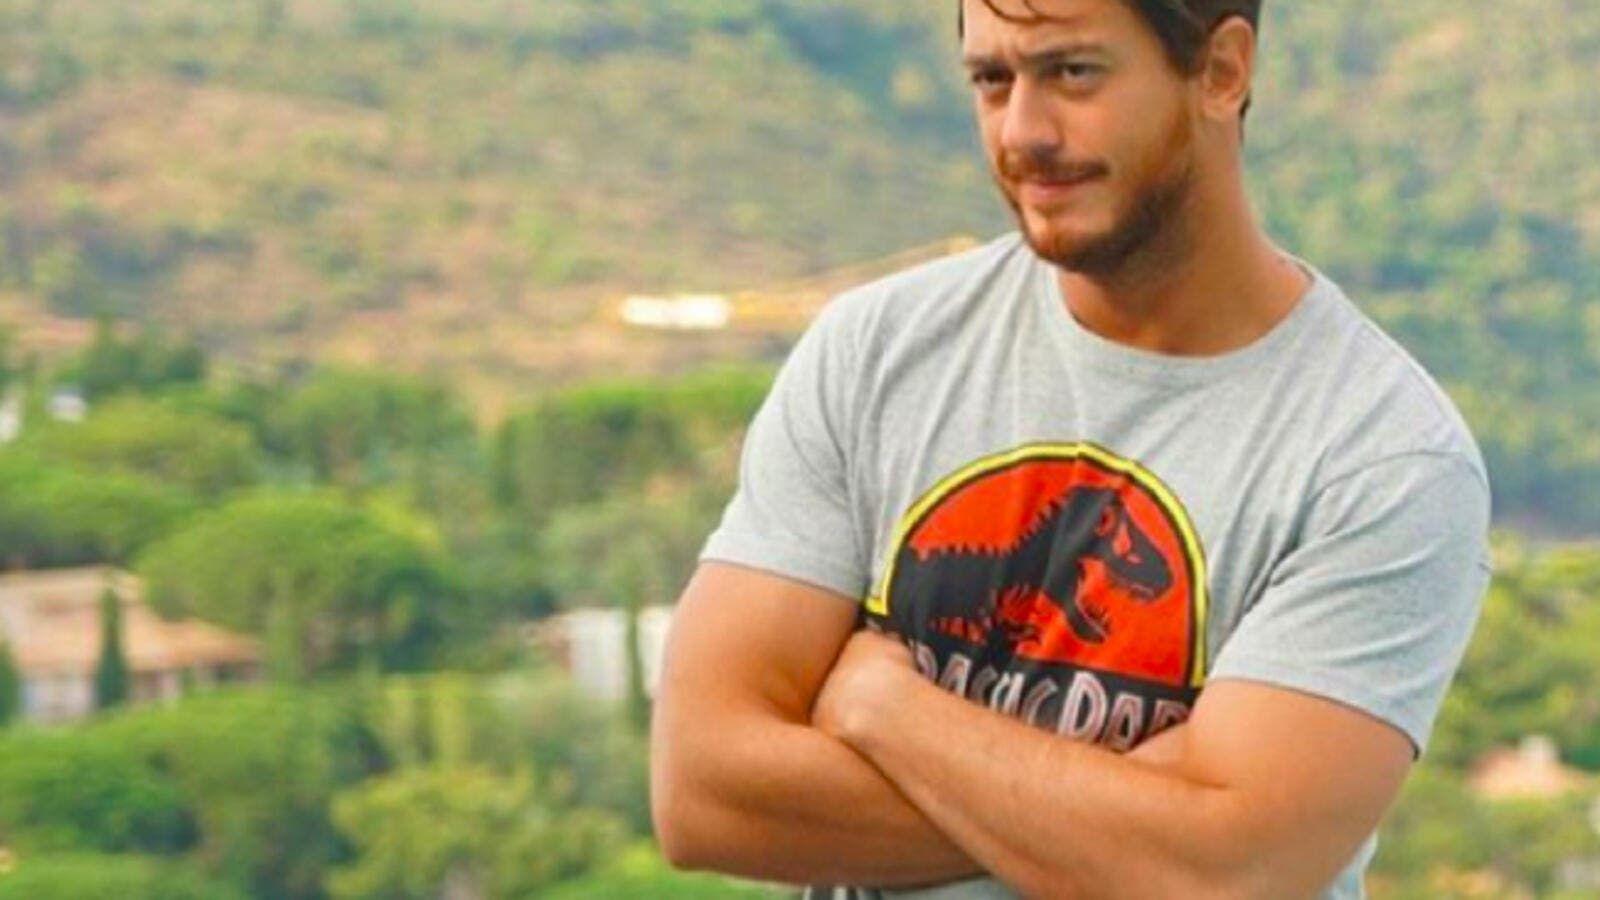 Saad will be imprisoned for second rape accusations (Source: saadlamjarred1 - Instagram)